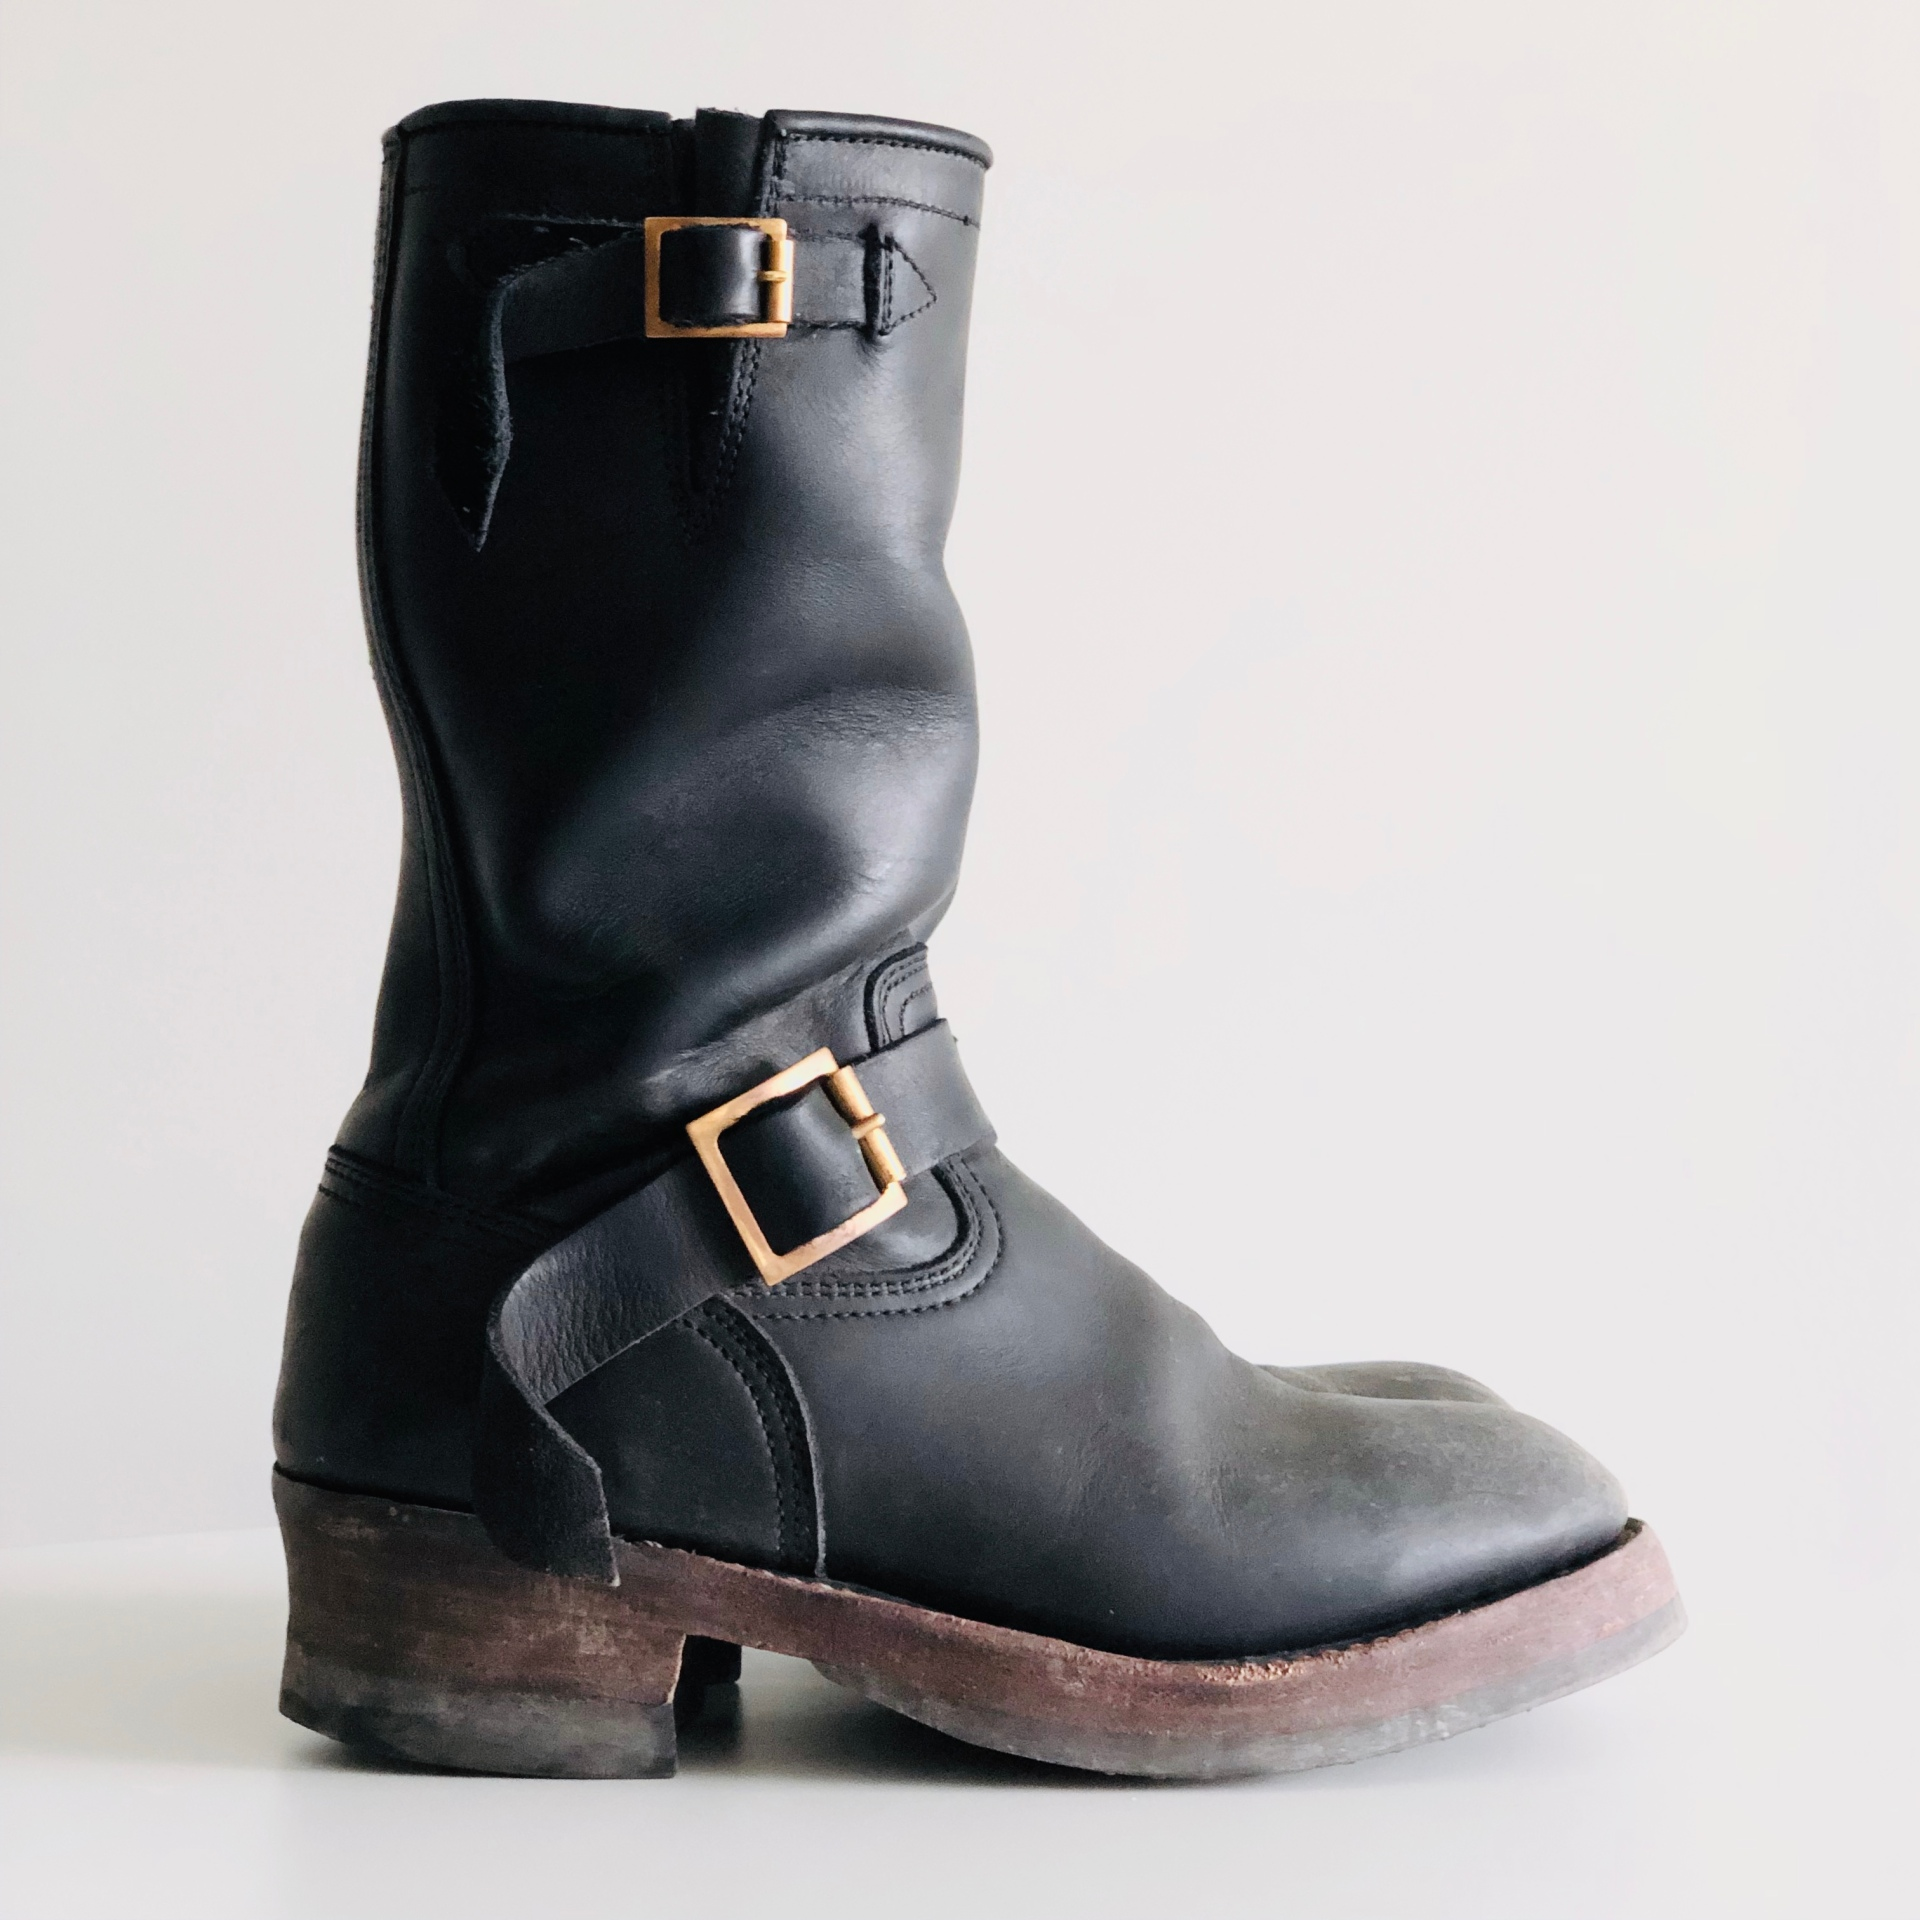 Dayton Stoker Engineer boot